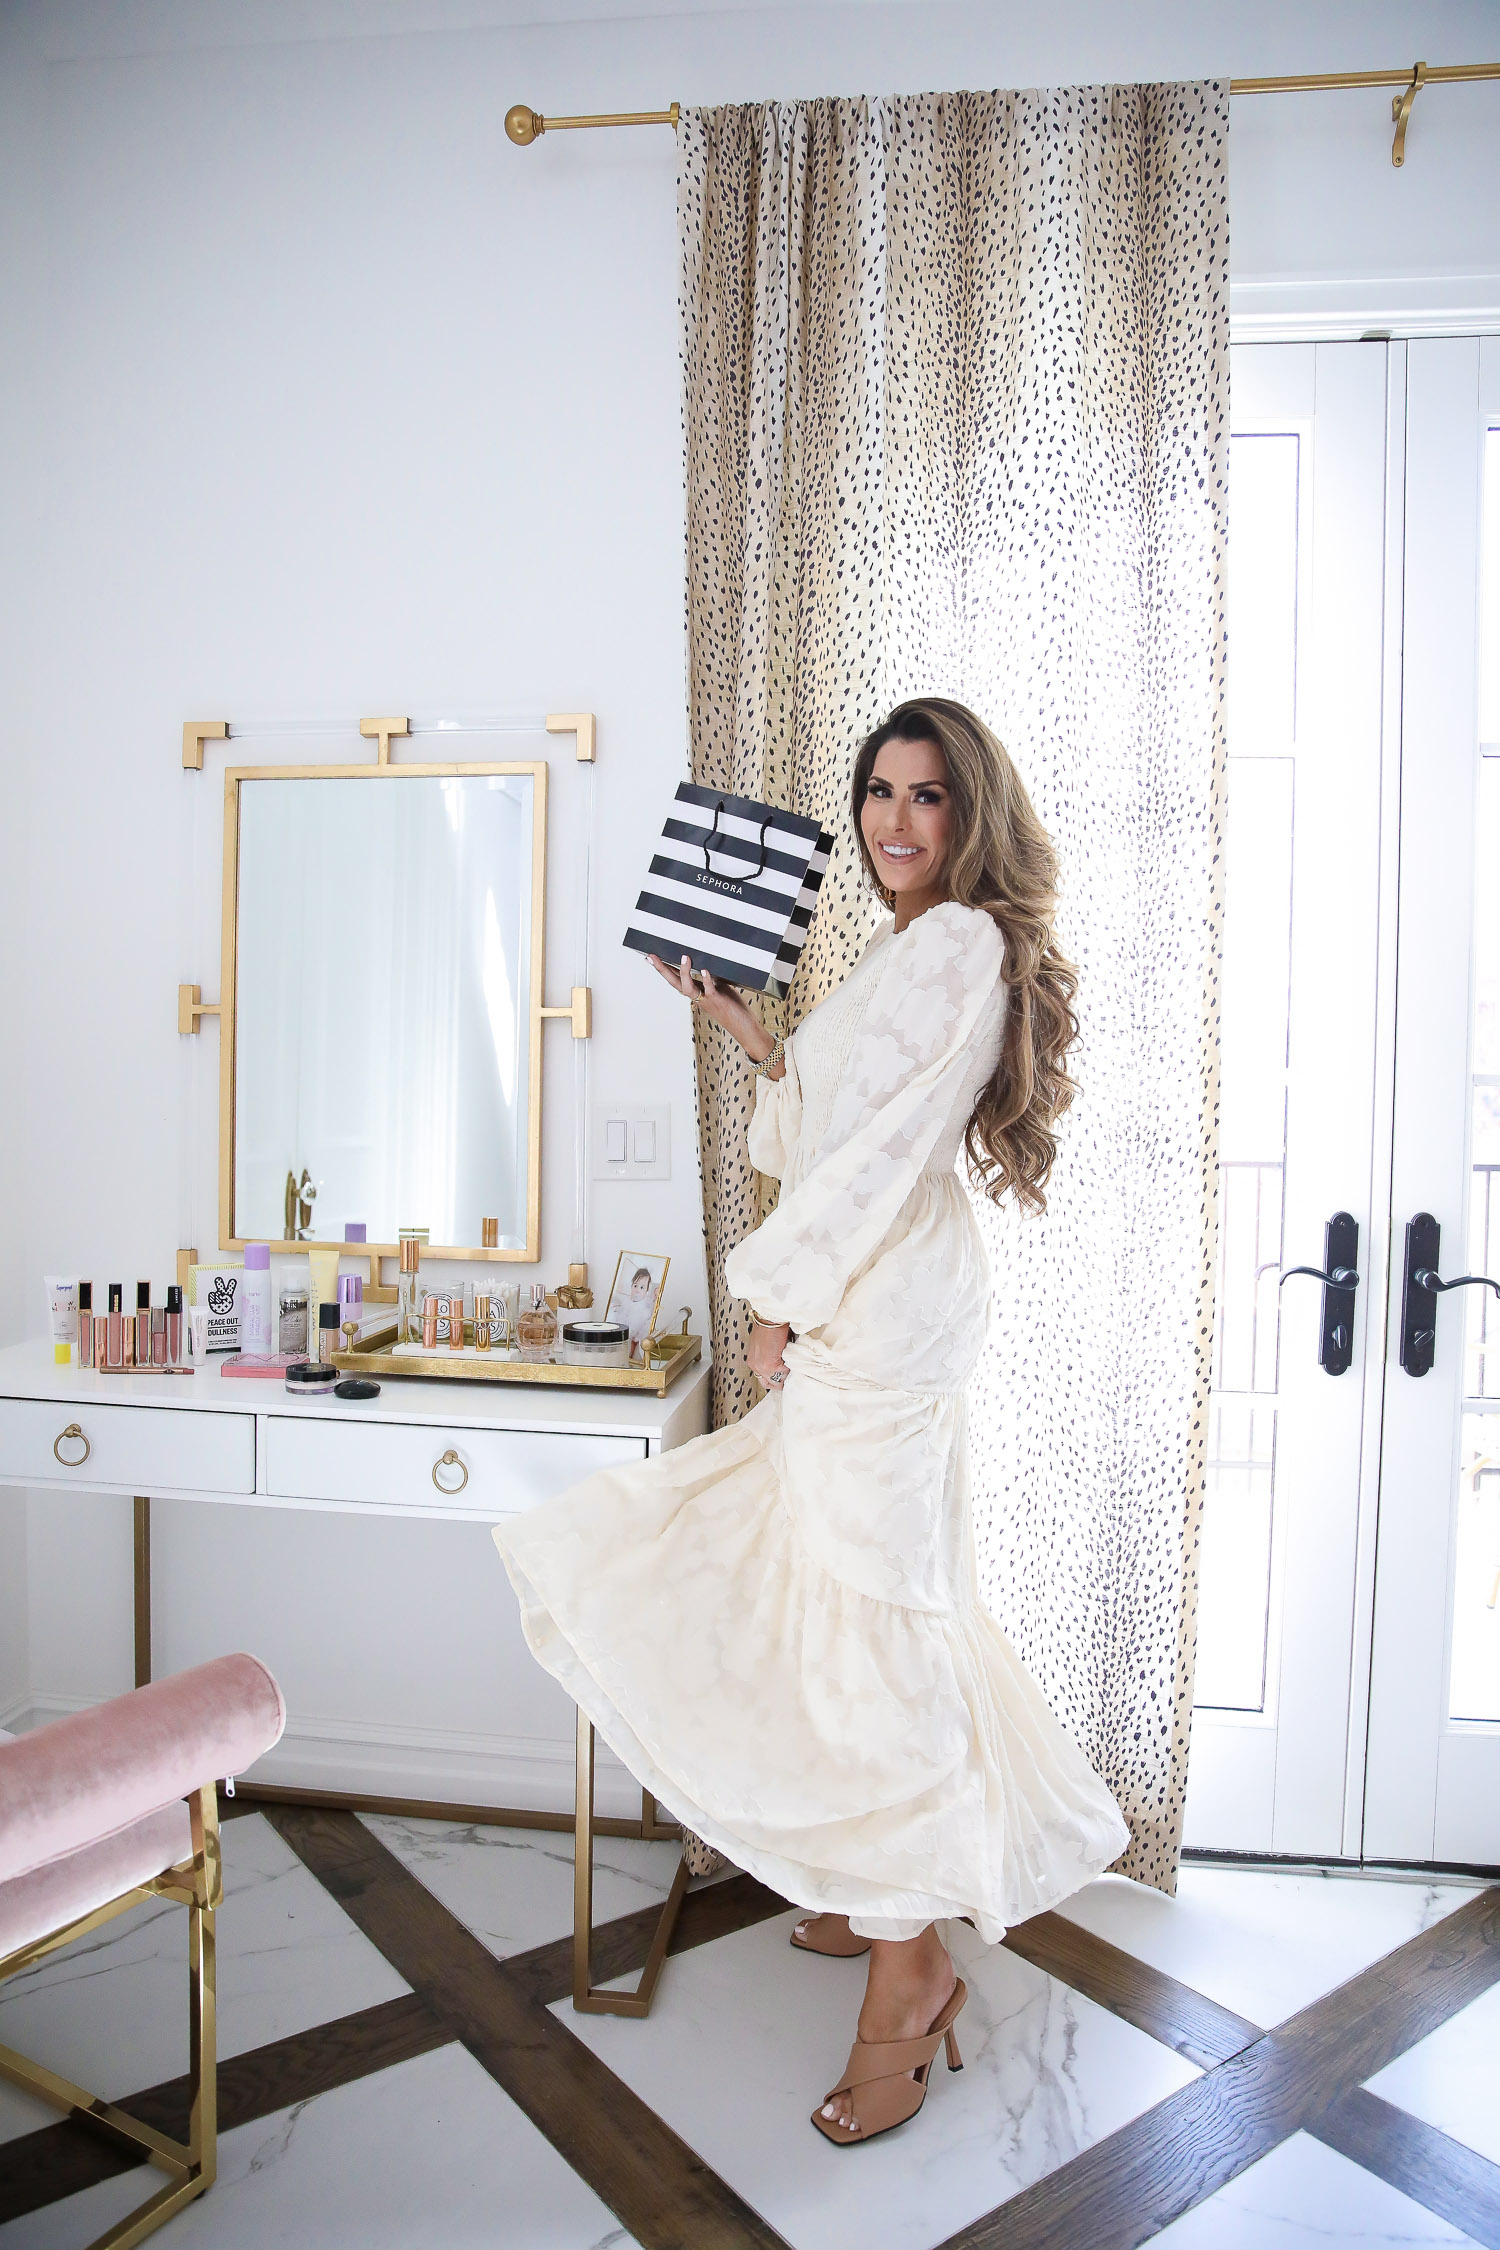 Sephora Haul spring 2020, beauty bloggers, Tatcha Liquid Silk Canvas review, lawless makeup review, emily gemma | Sephora Favorites by popular US beauty blog, The Sweetest Thing: image of a woman wearing cream maxi dress and holding a Sephora makeup bag while standing next to her vanity.